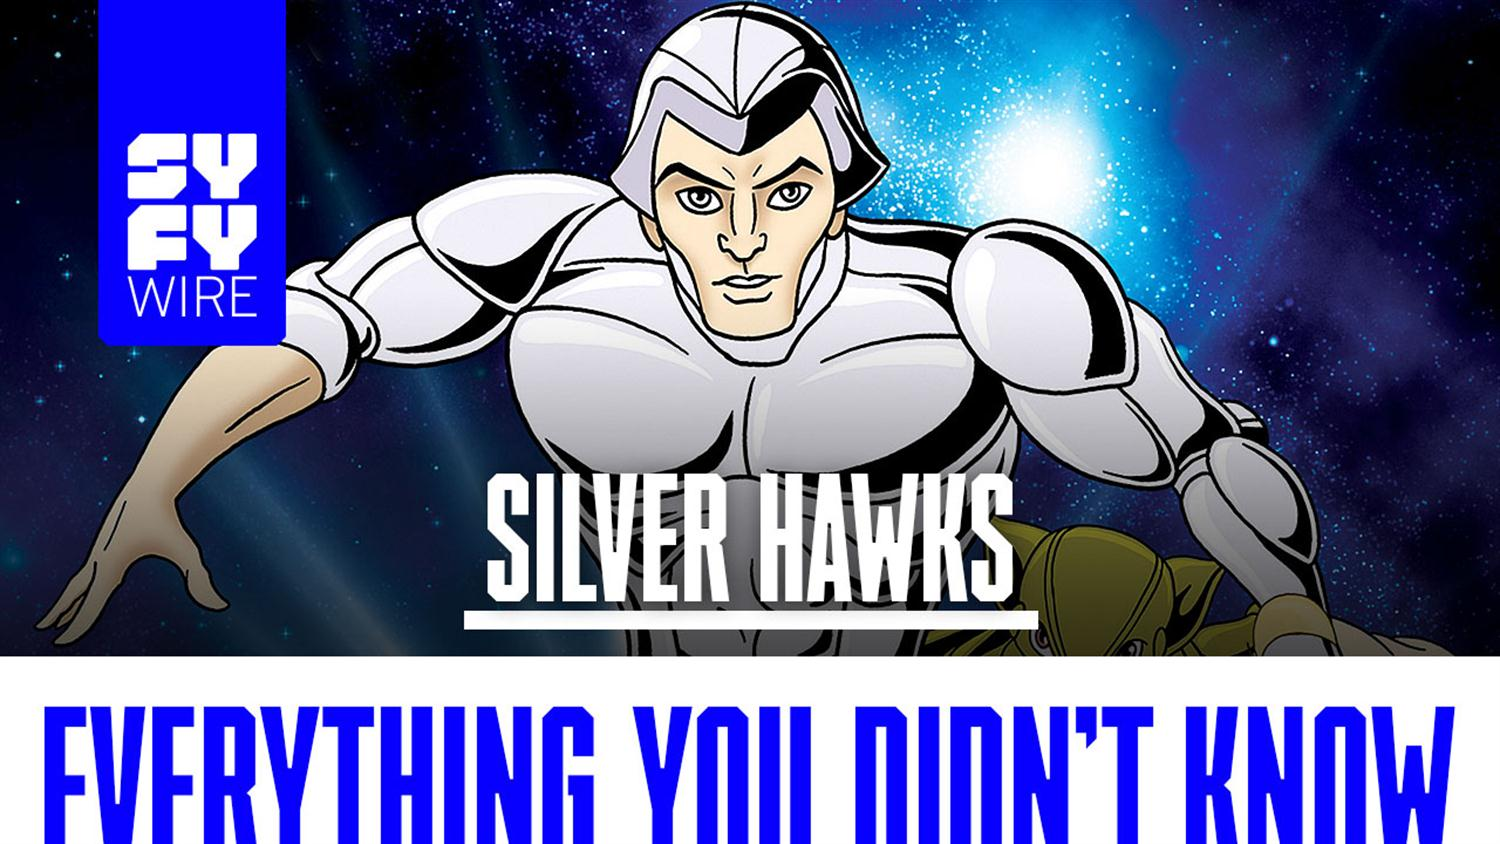 Silverhawks: Everything You Didn't Know